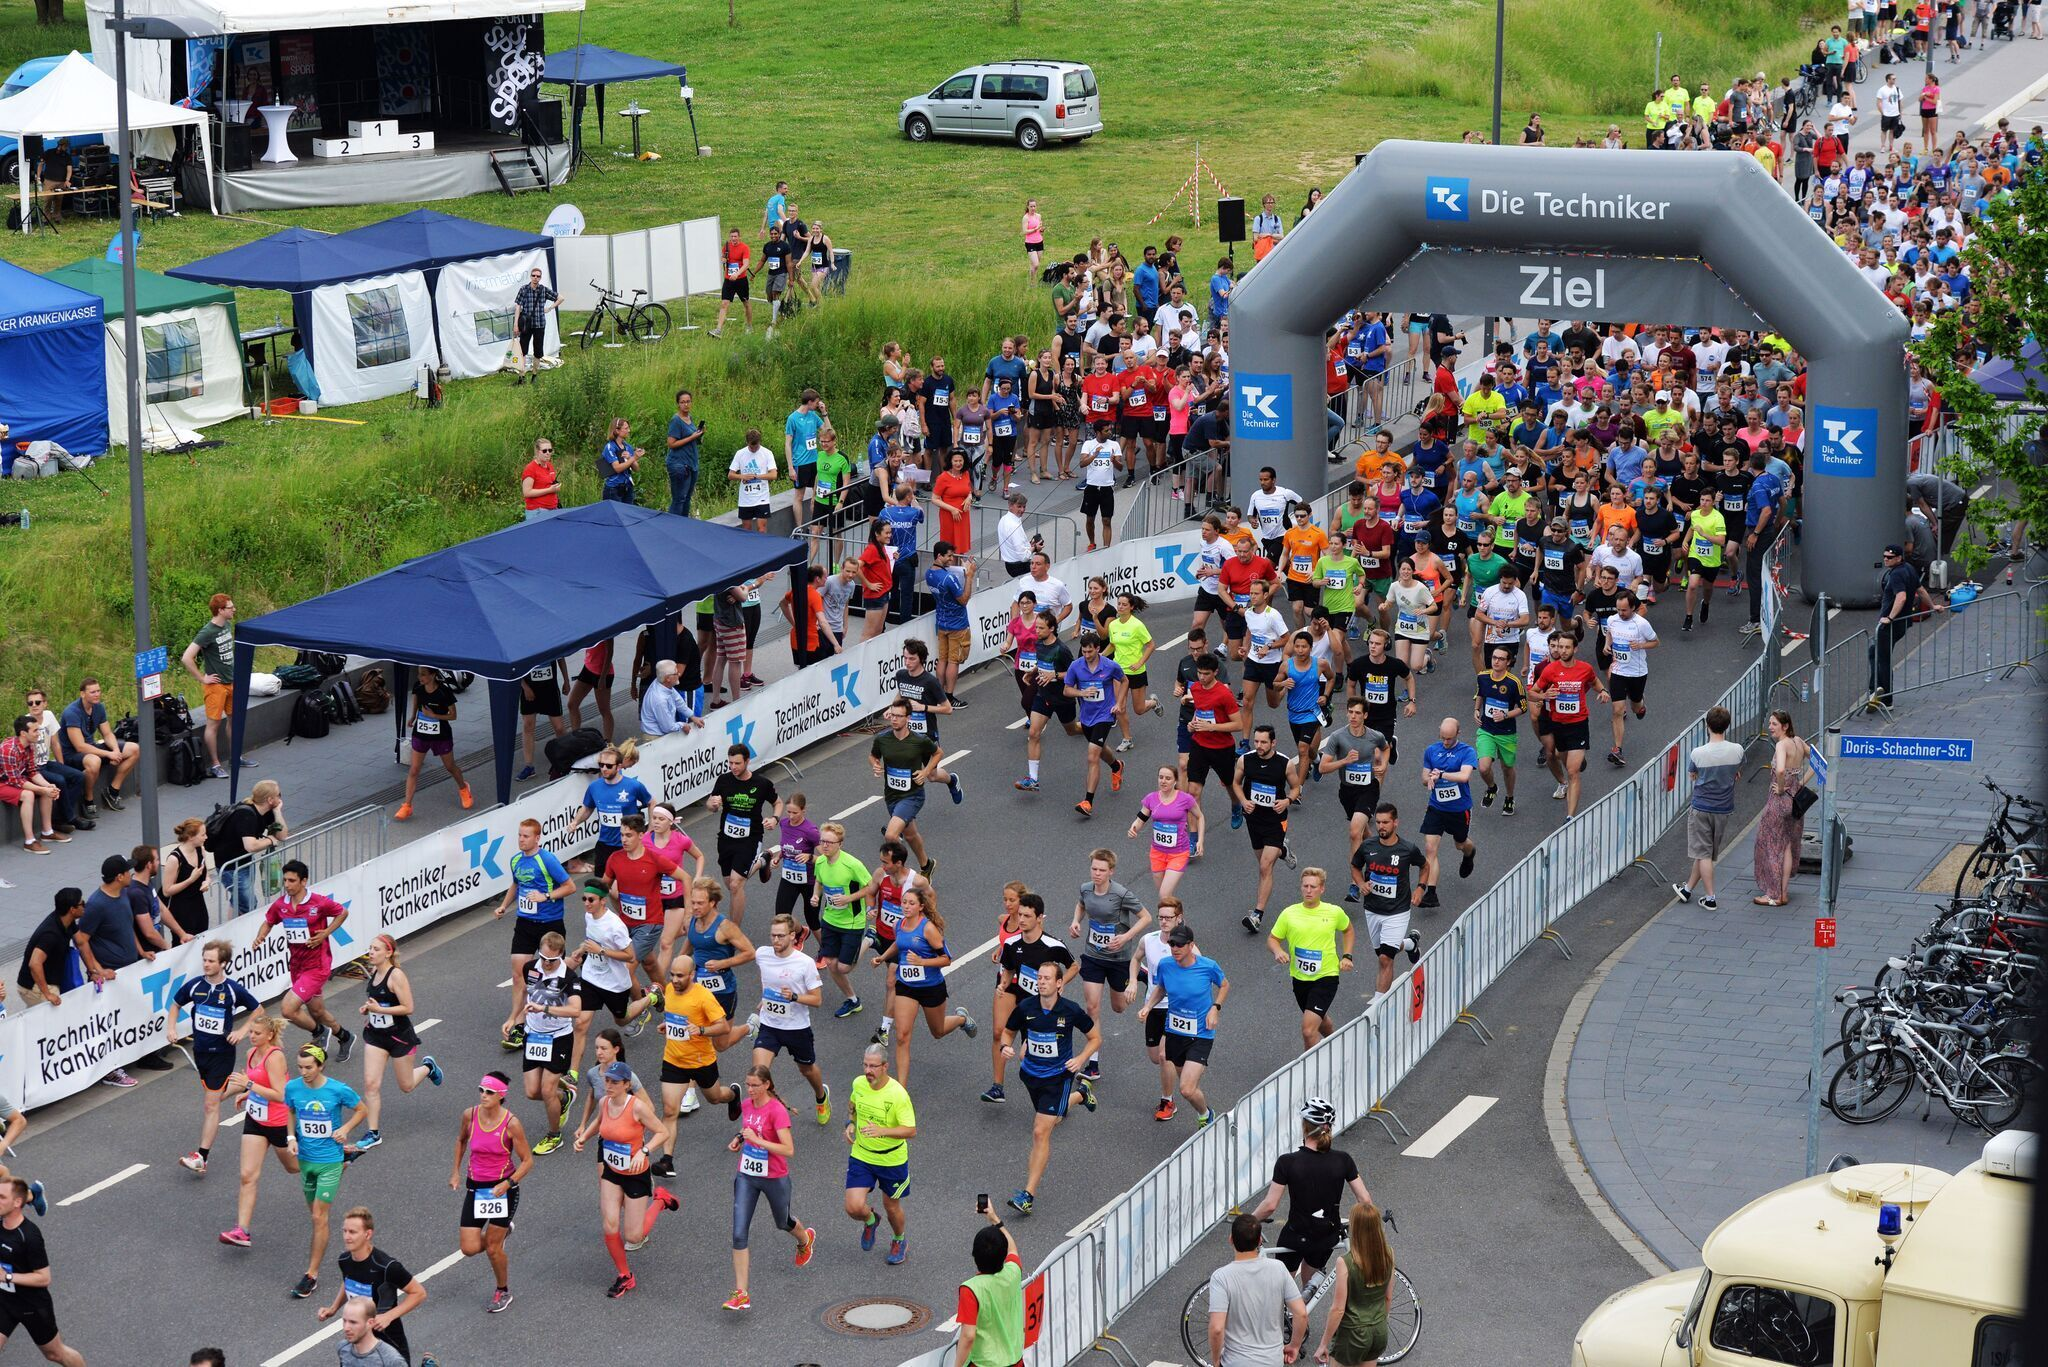 runners in finish area